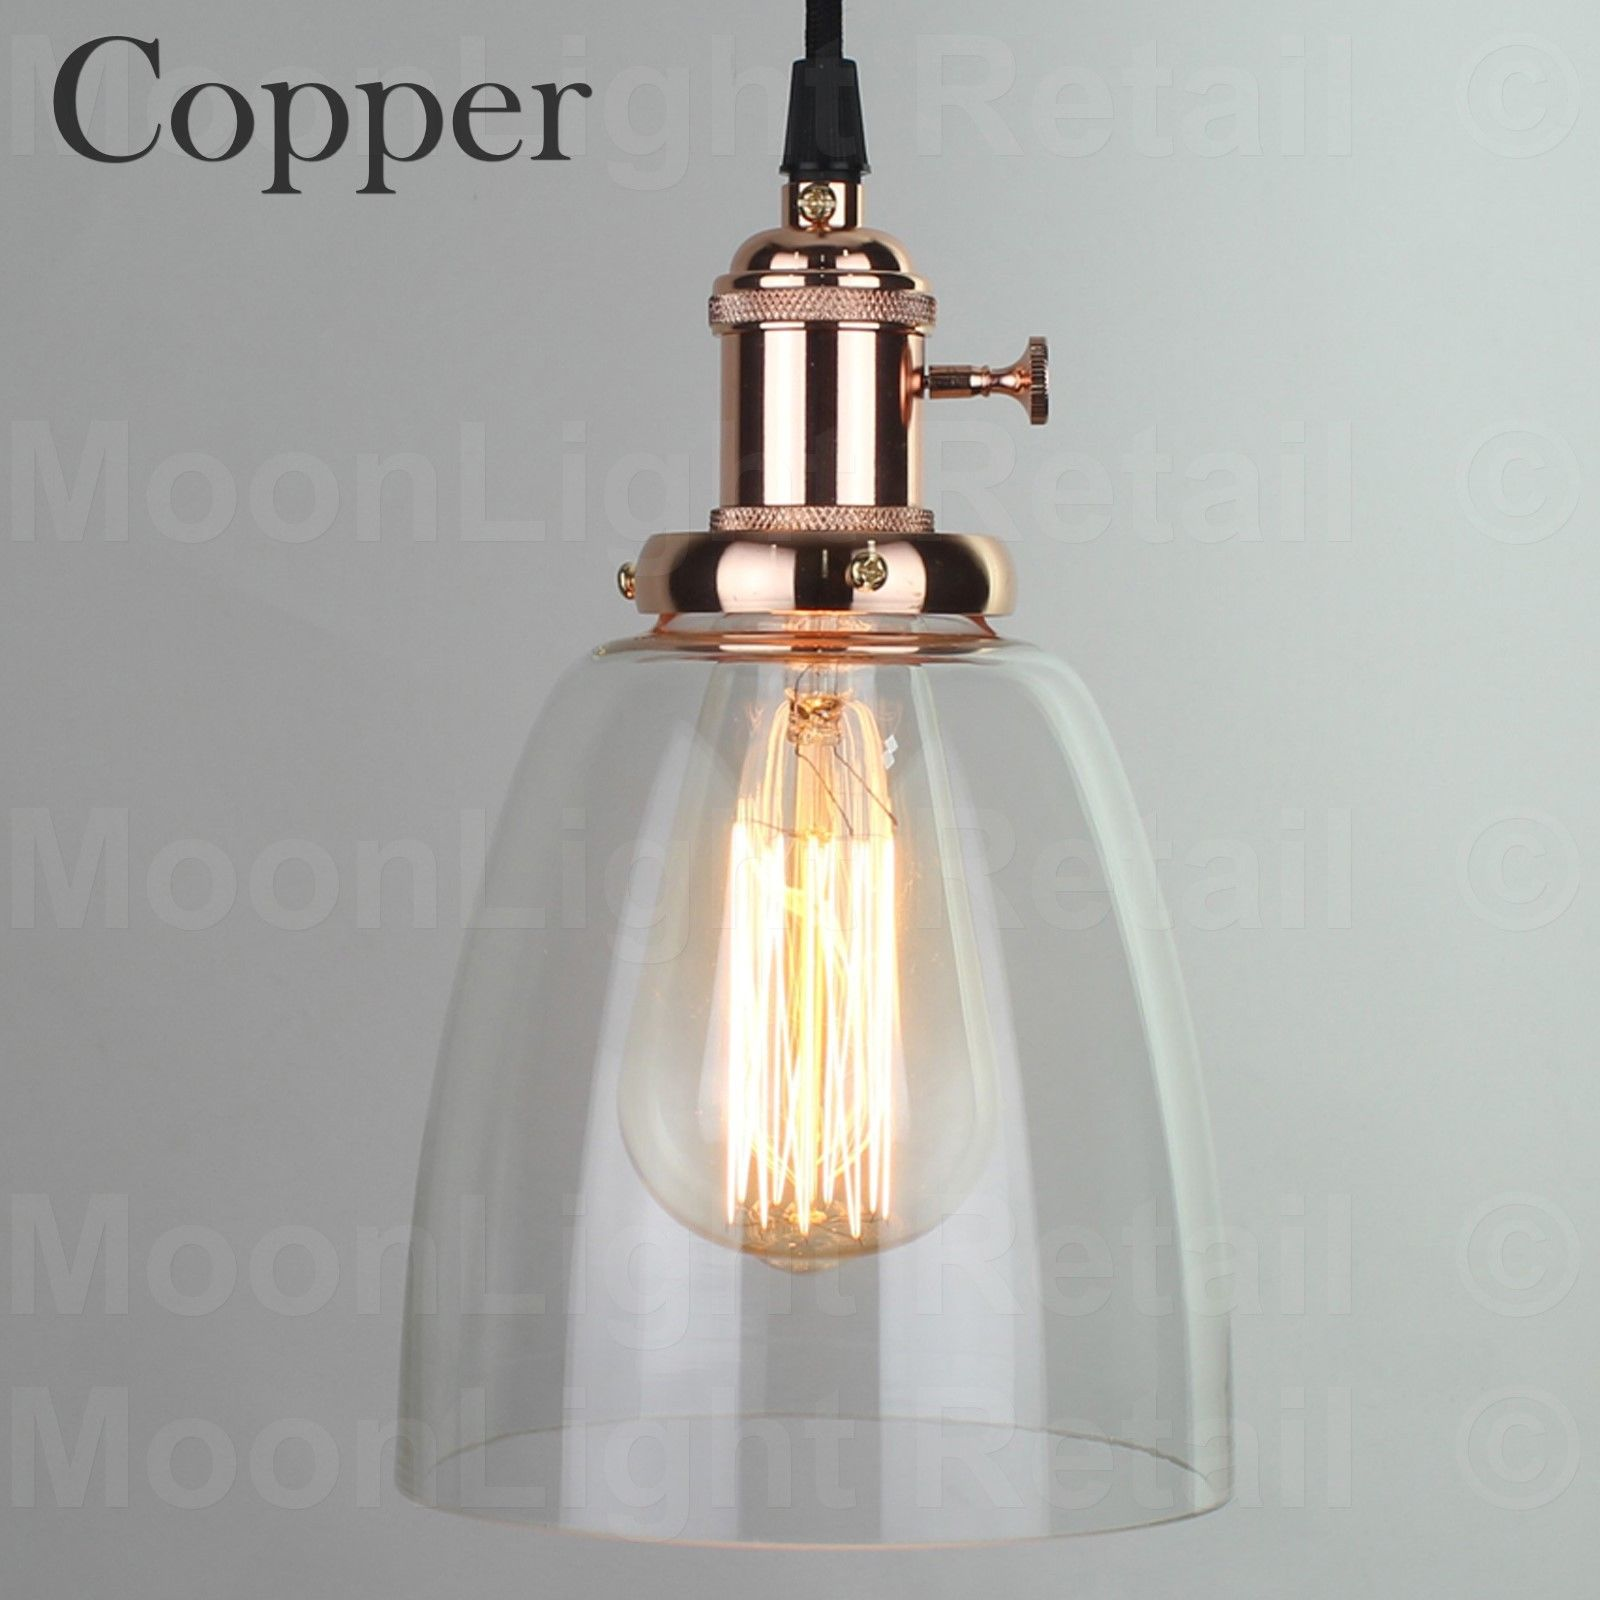 Vintage Industrial Glass Pendant Light: VINTAGE INDUSTRIAL CEILING LAMP CAFE GLASS PENDANT LIGHT